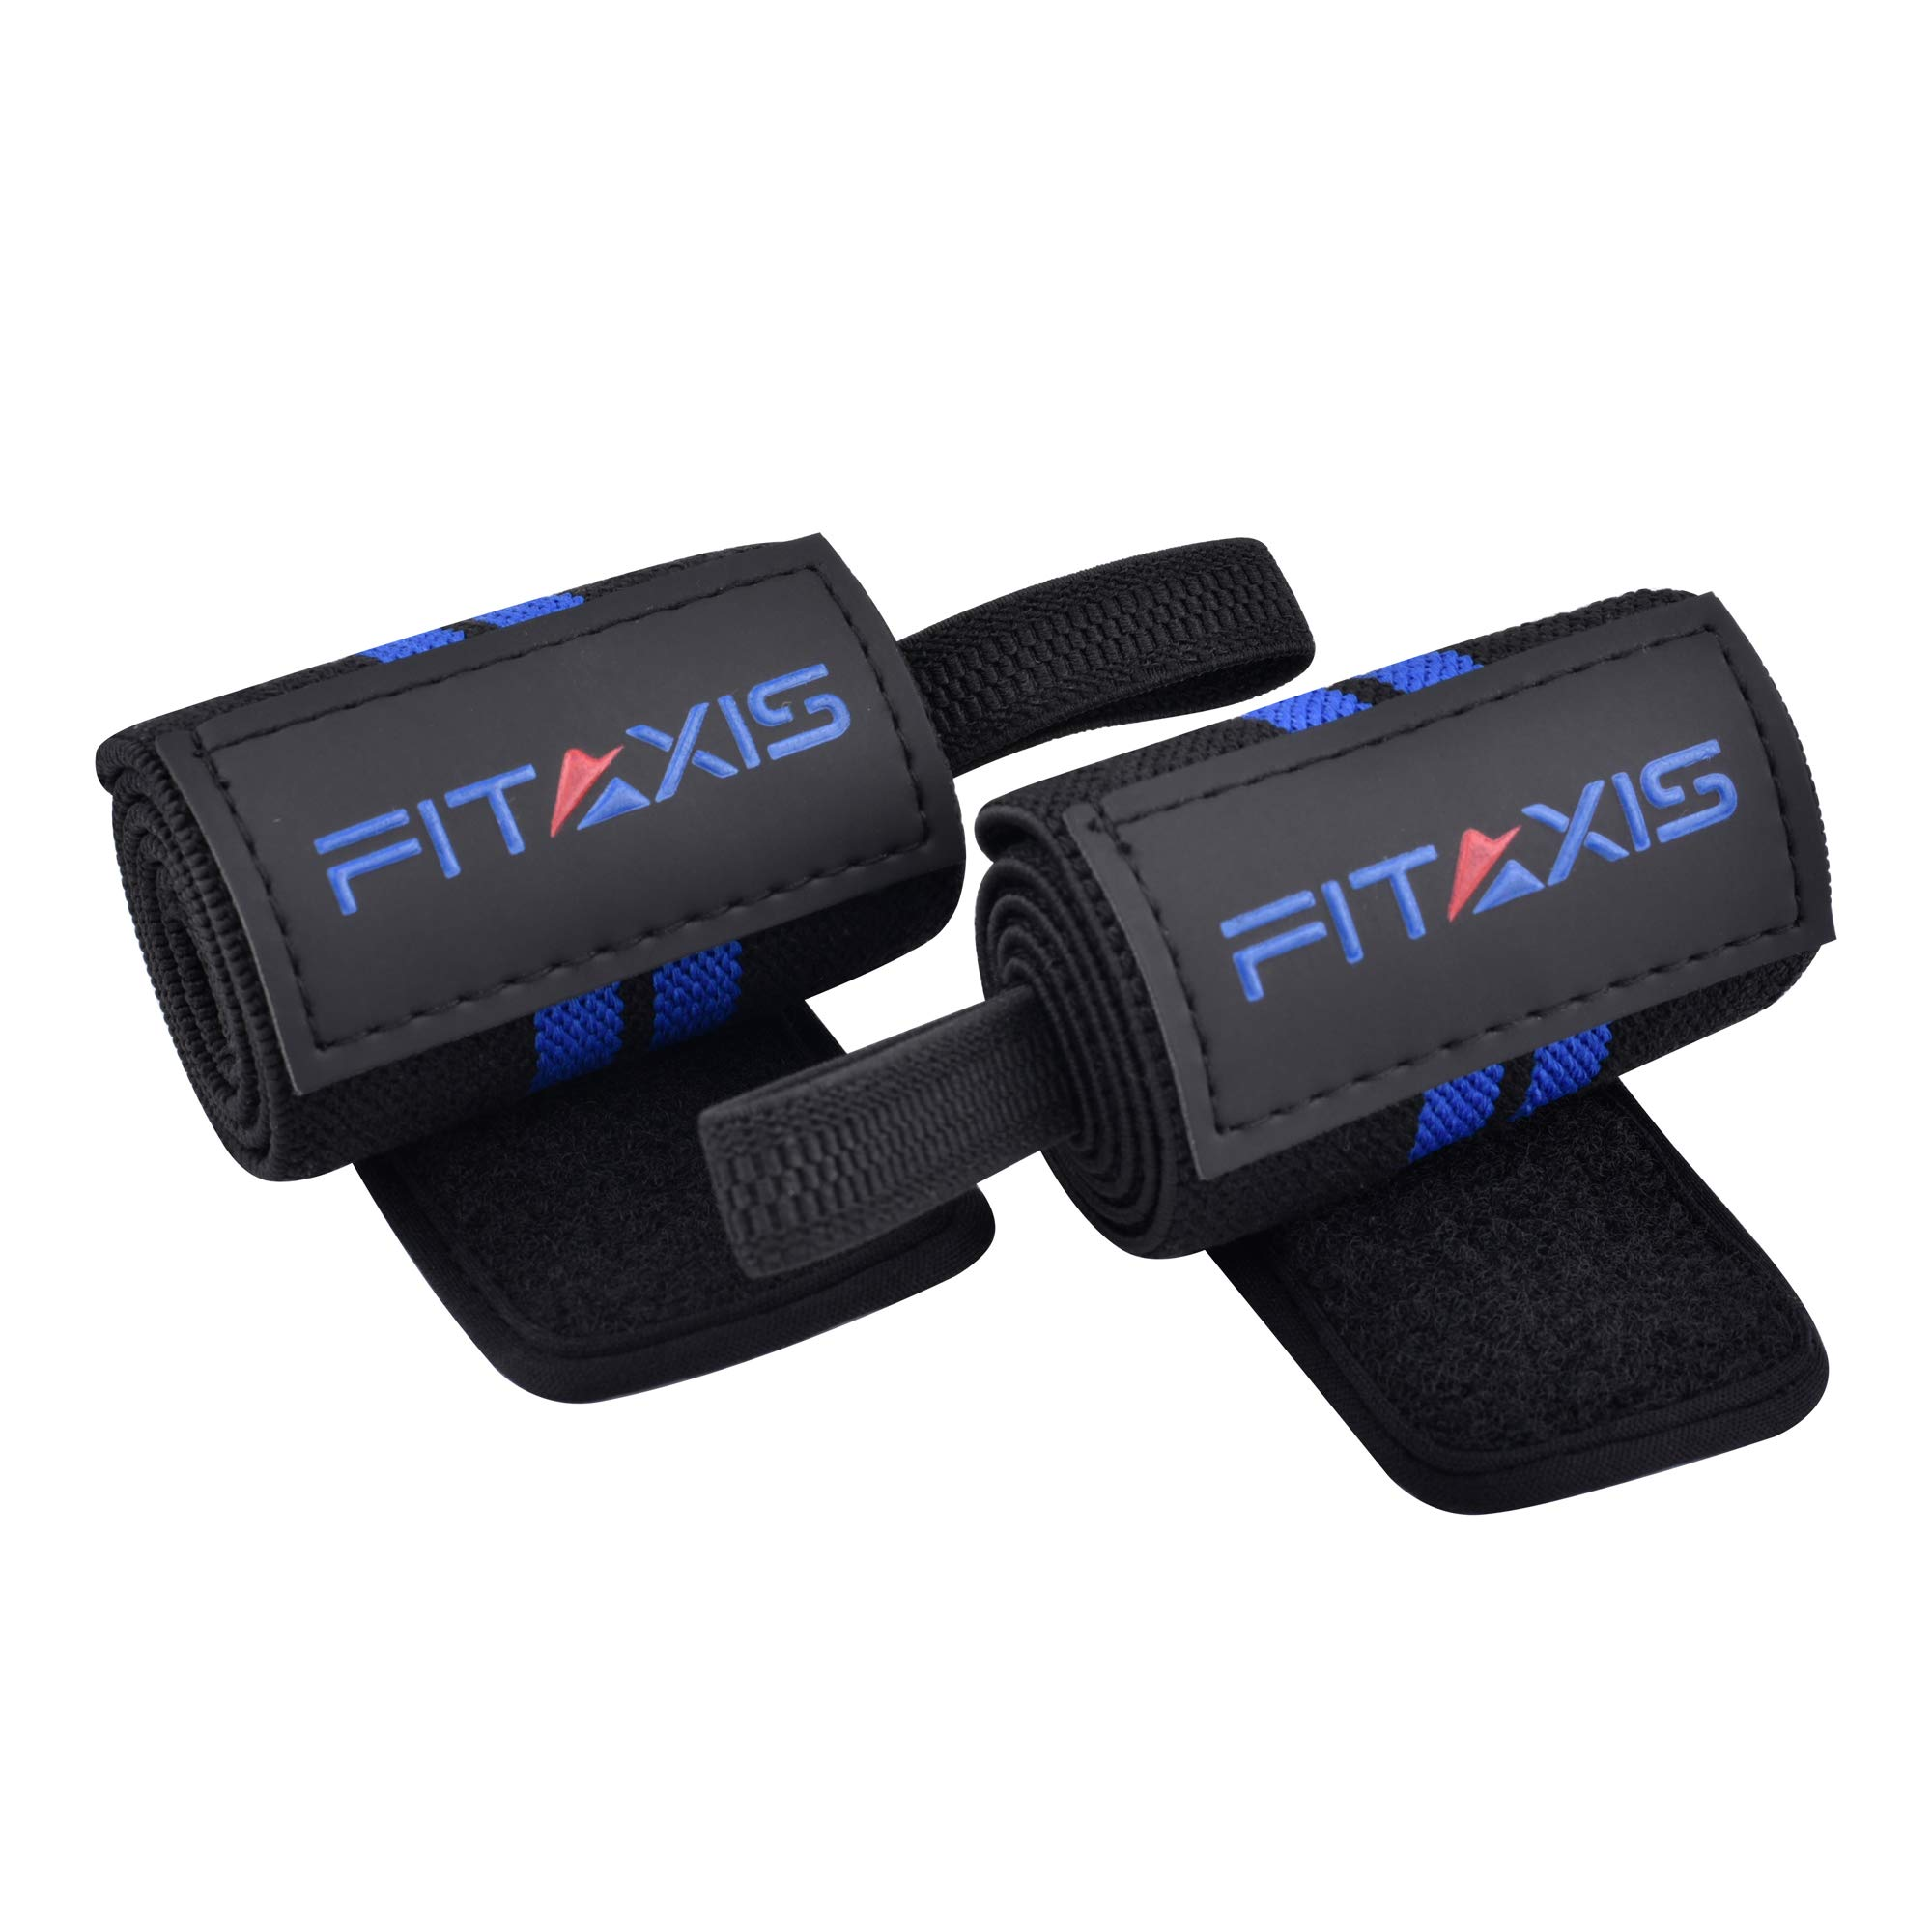 FITAXIS Muñequeras | Wrist Wraps/Bands for Gimnasio Fitness Crossfit Weightlifting para Hombres y Mujeres (Black/Blue, 18"|2000|2000|?|a6a12ab0e762c8e676b6d15553478a41|False|UNLIKELY|0.3546784222126007